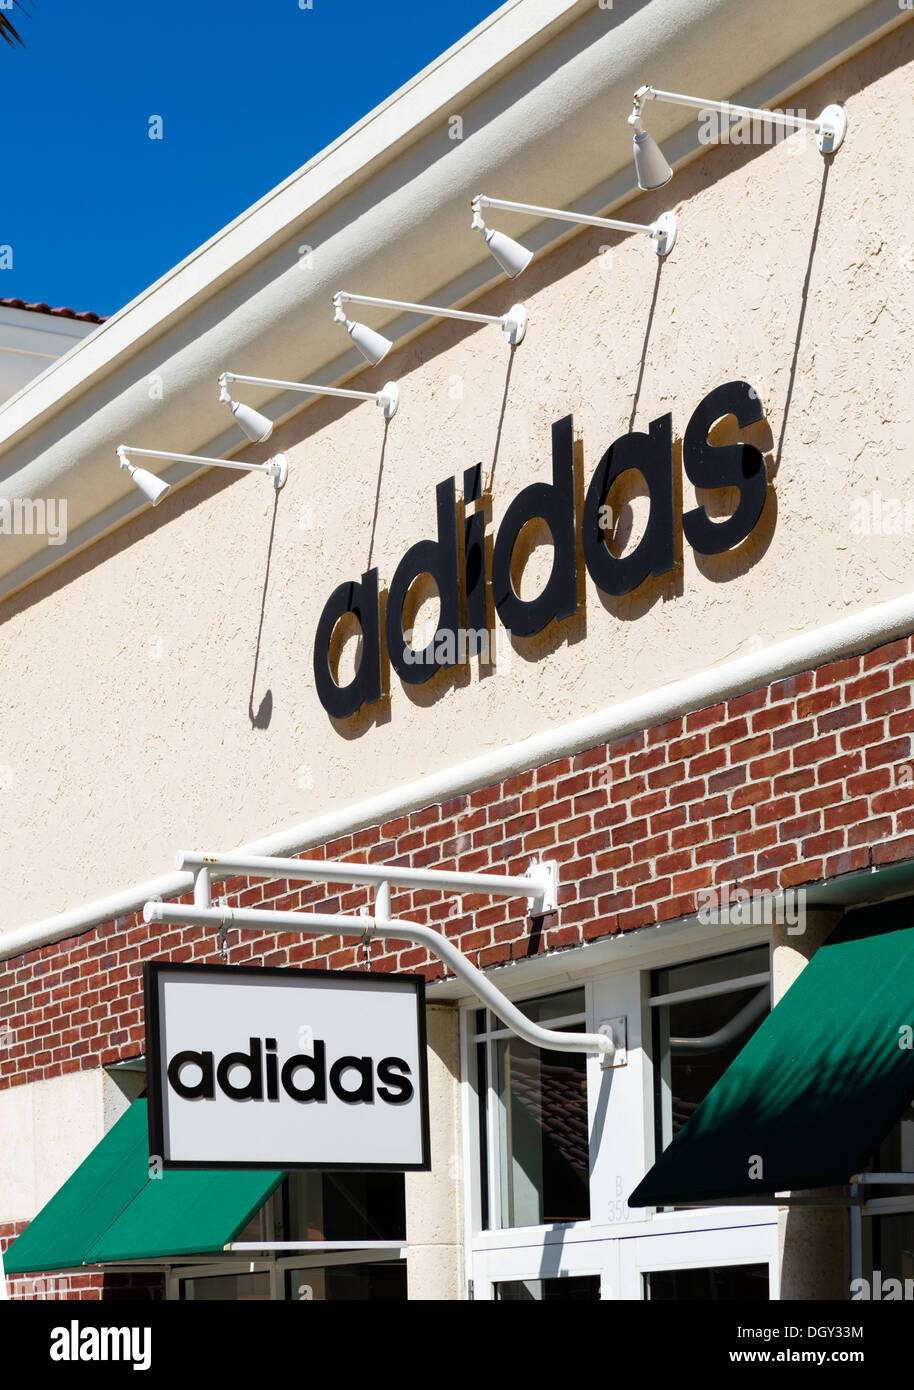 Adidas factory outlet store at Orlando Premium Outlets Mall, Vineland Avenue, Lake Buena Vista, Orlando, Central Florida, USA - Stock Image